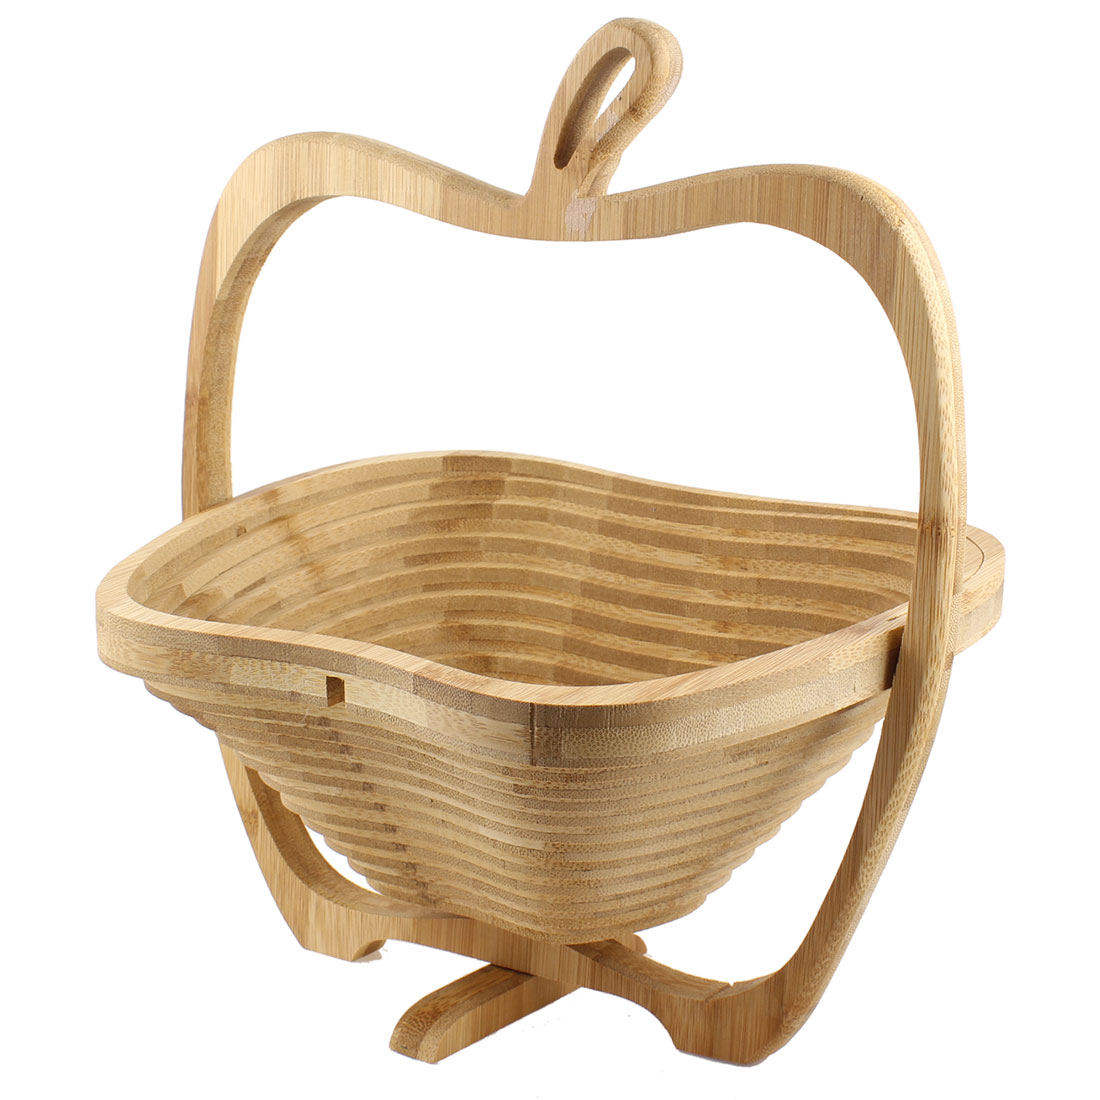 Flexible Apple Shape Wood Carving Artificial Wooden Fruit Basket Holder